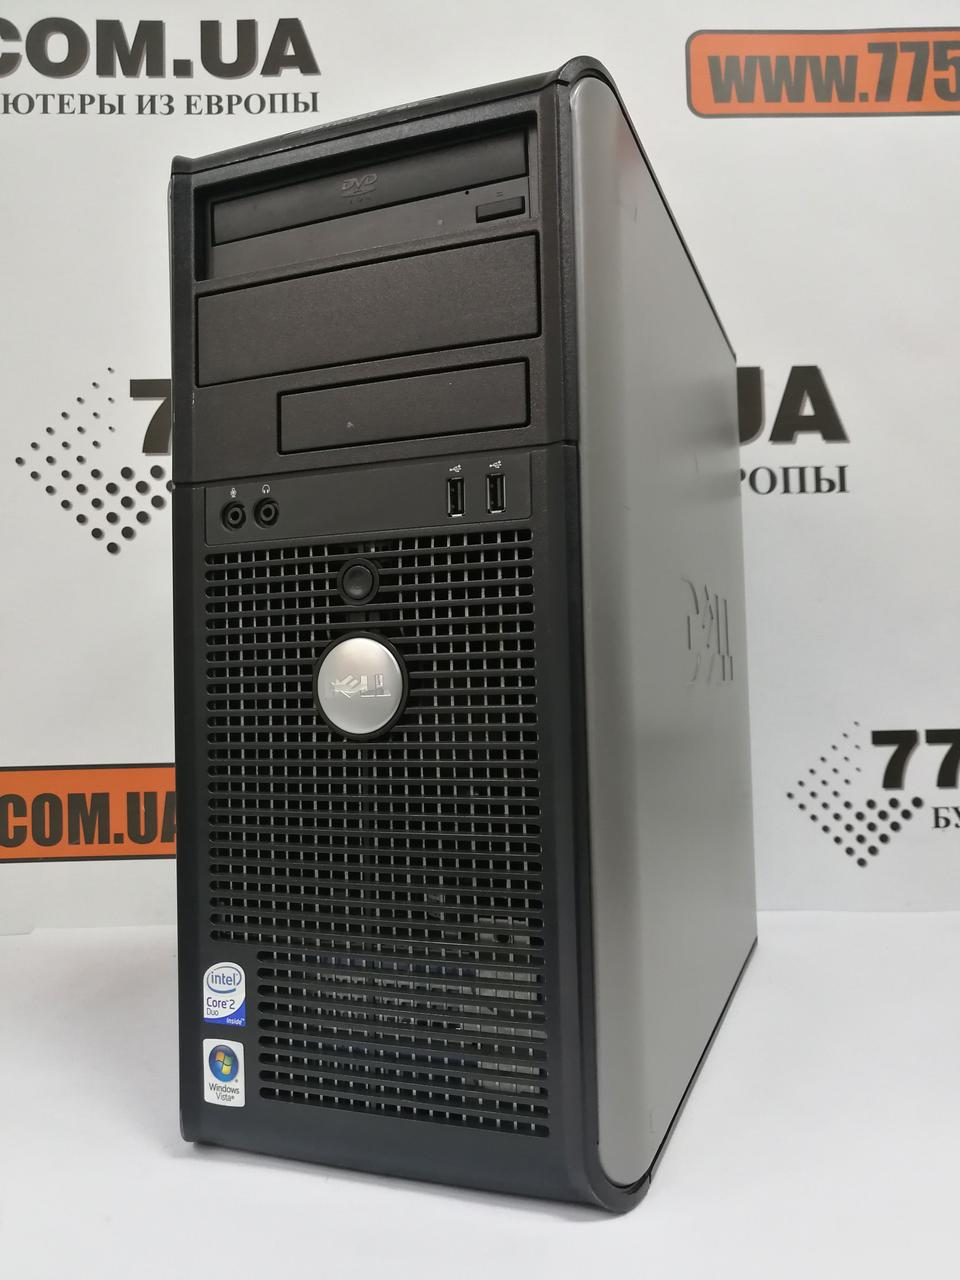 Компьютер DELL Optiplex 755/760 Tower, без CPU, без RAM (DDR2), без HDD